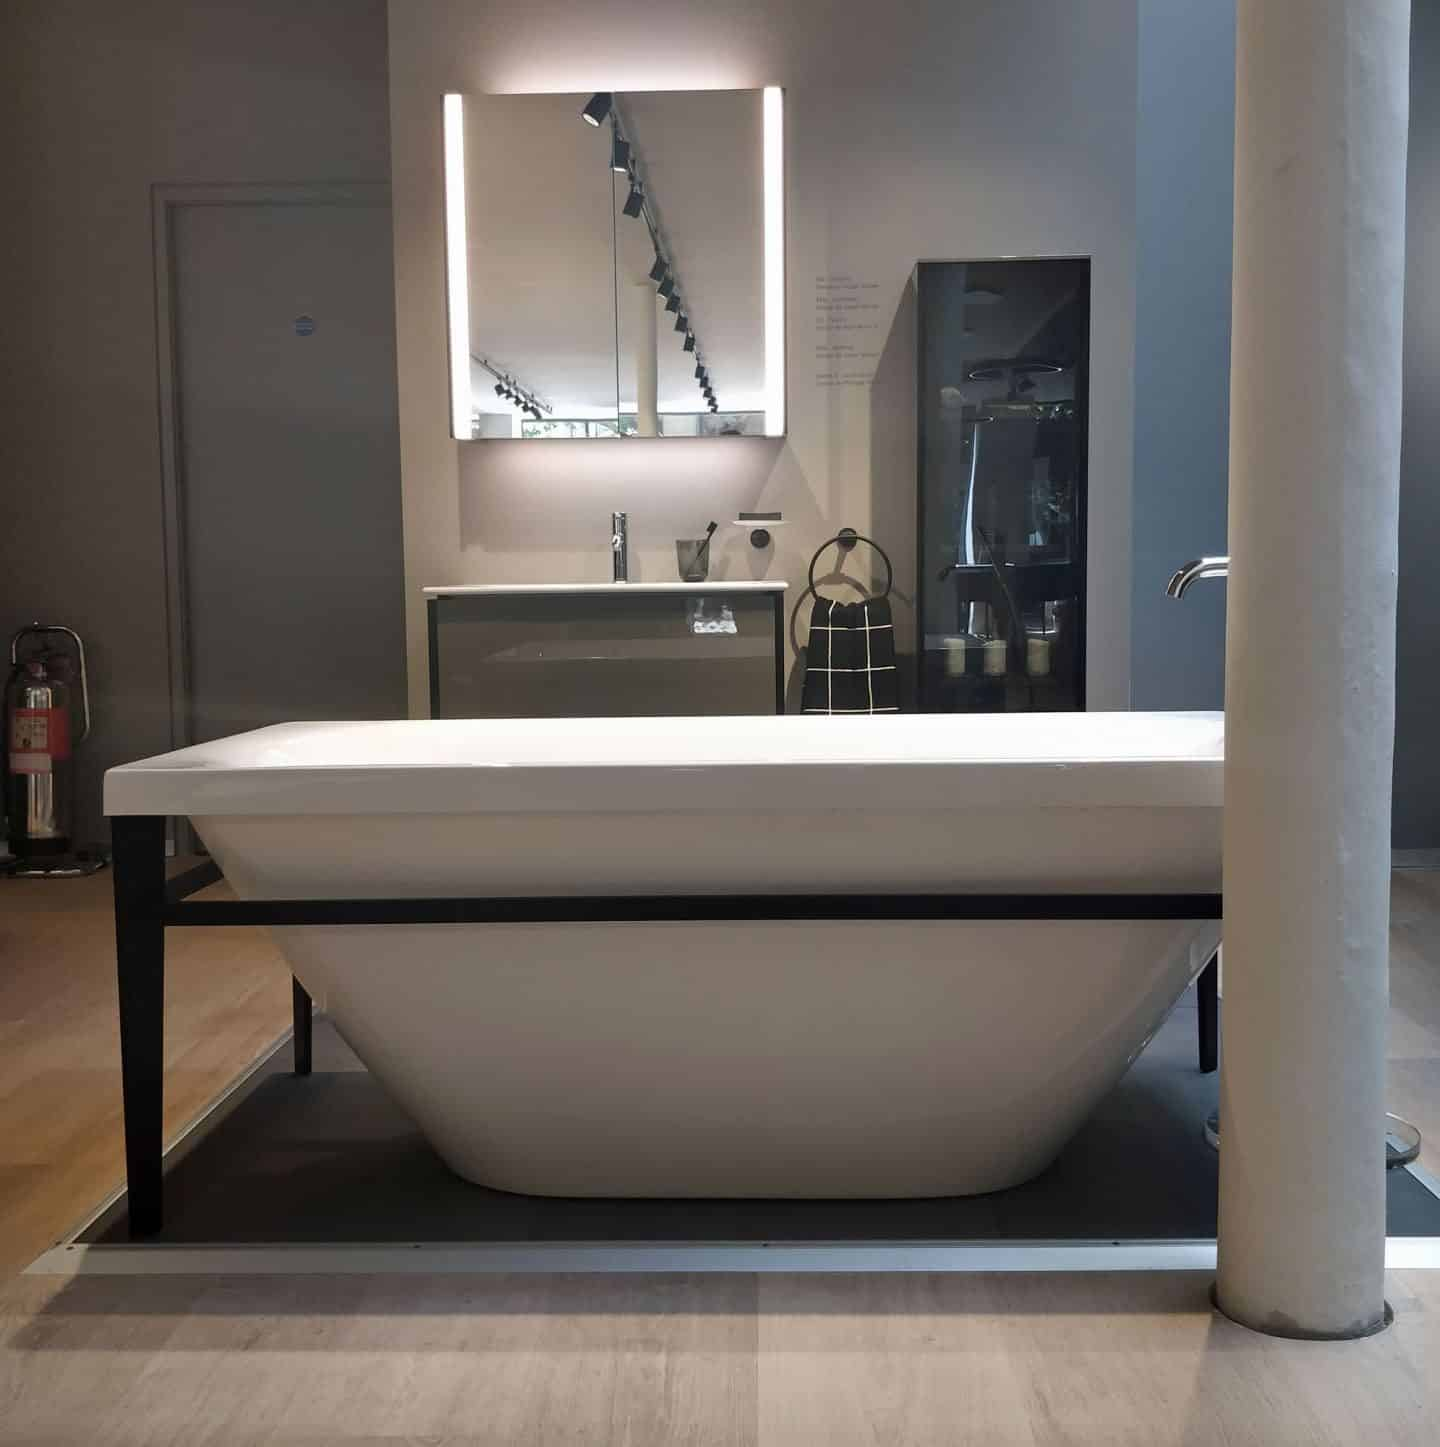 Viu /XViu bathtub in the Duravit Showroom in Clerkenwell